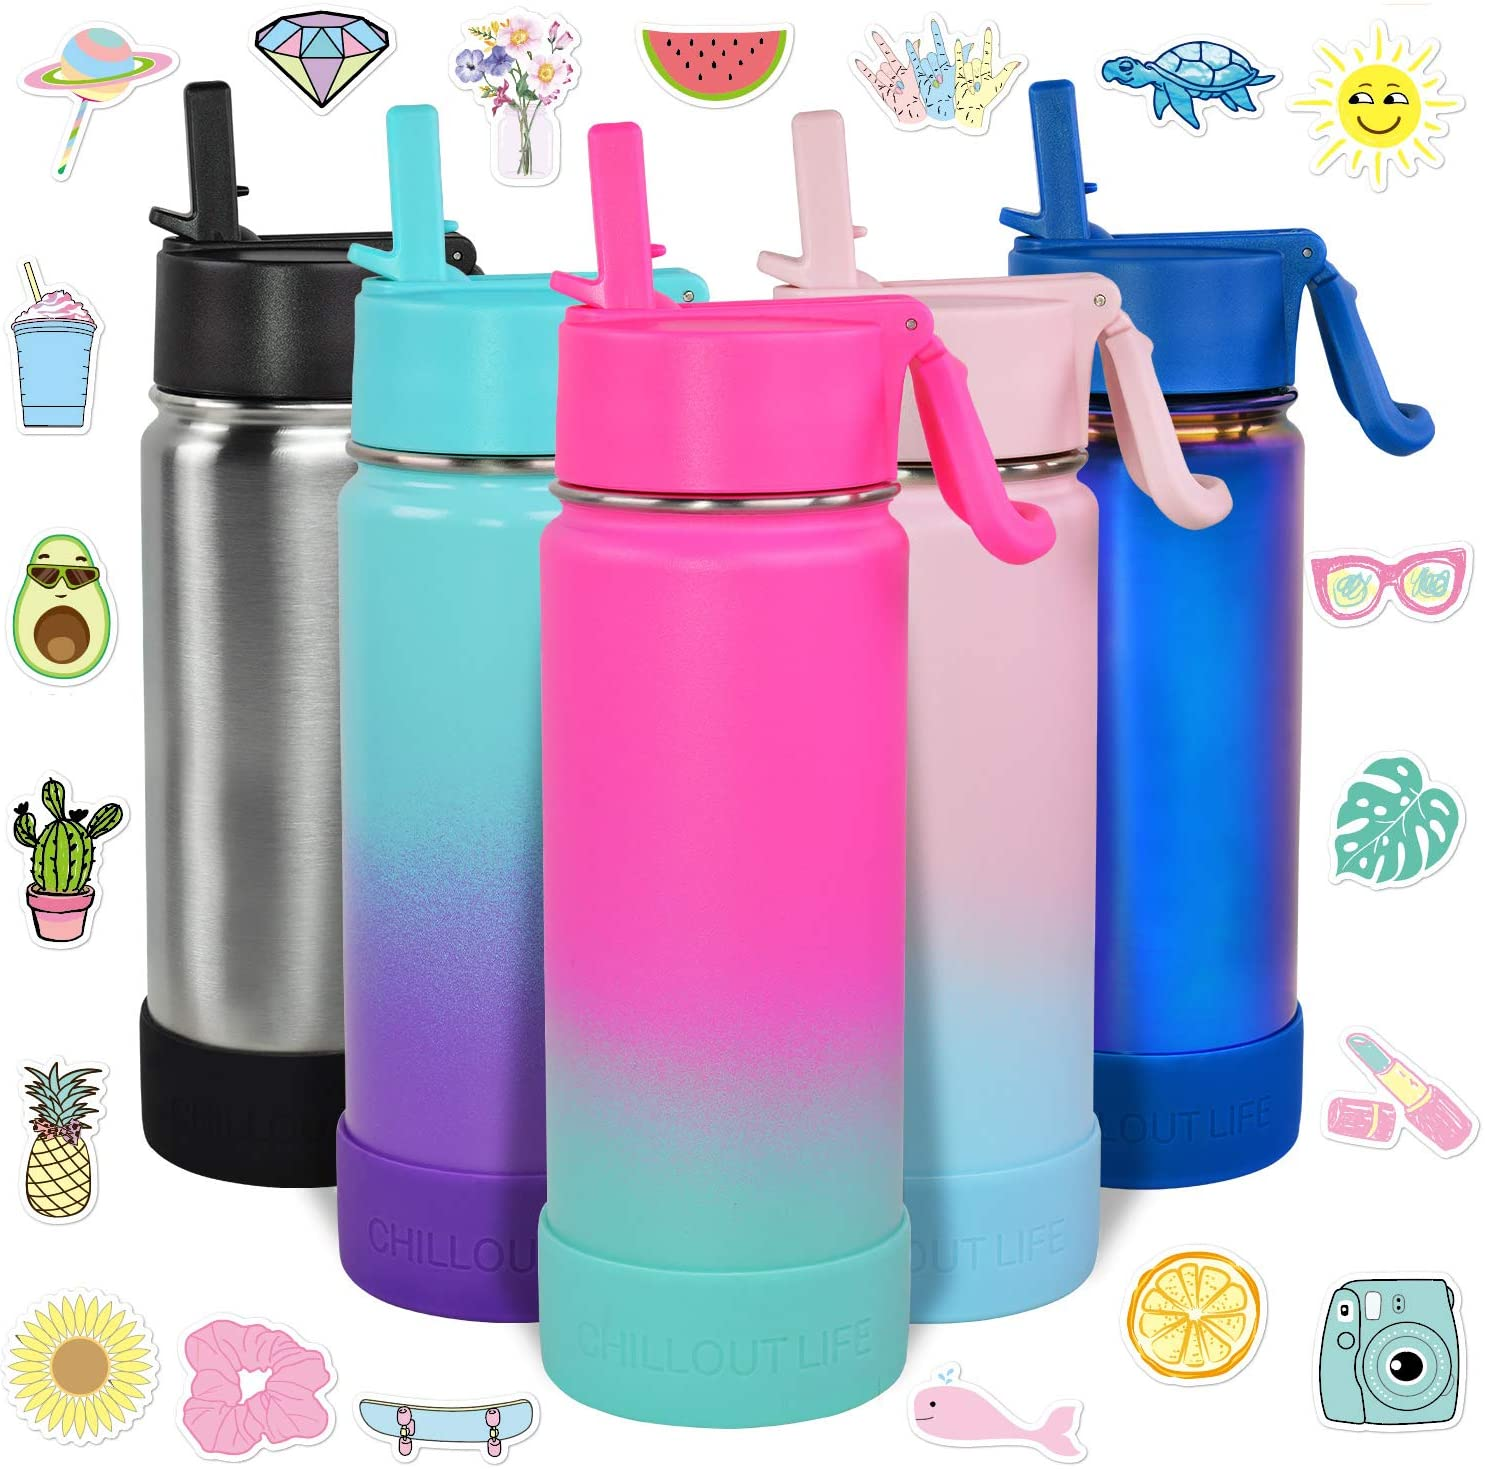 CHILLOUT LIFE 12 oz Insulated Water Bottle with Straw Lid for Kids 20 Cute Waterproof Stickers Perfect for Personalizing Your Kids Metal Water Bottle